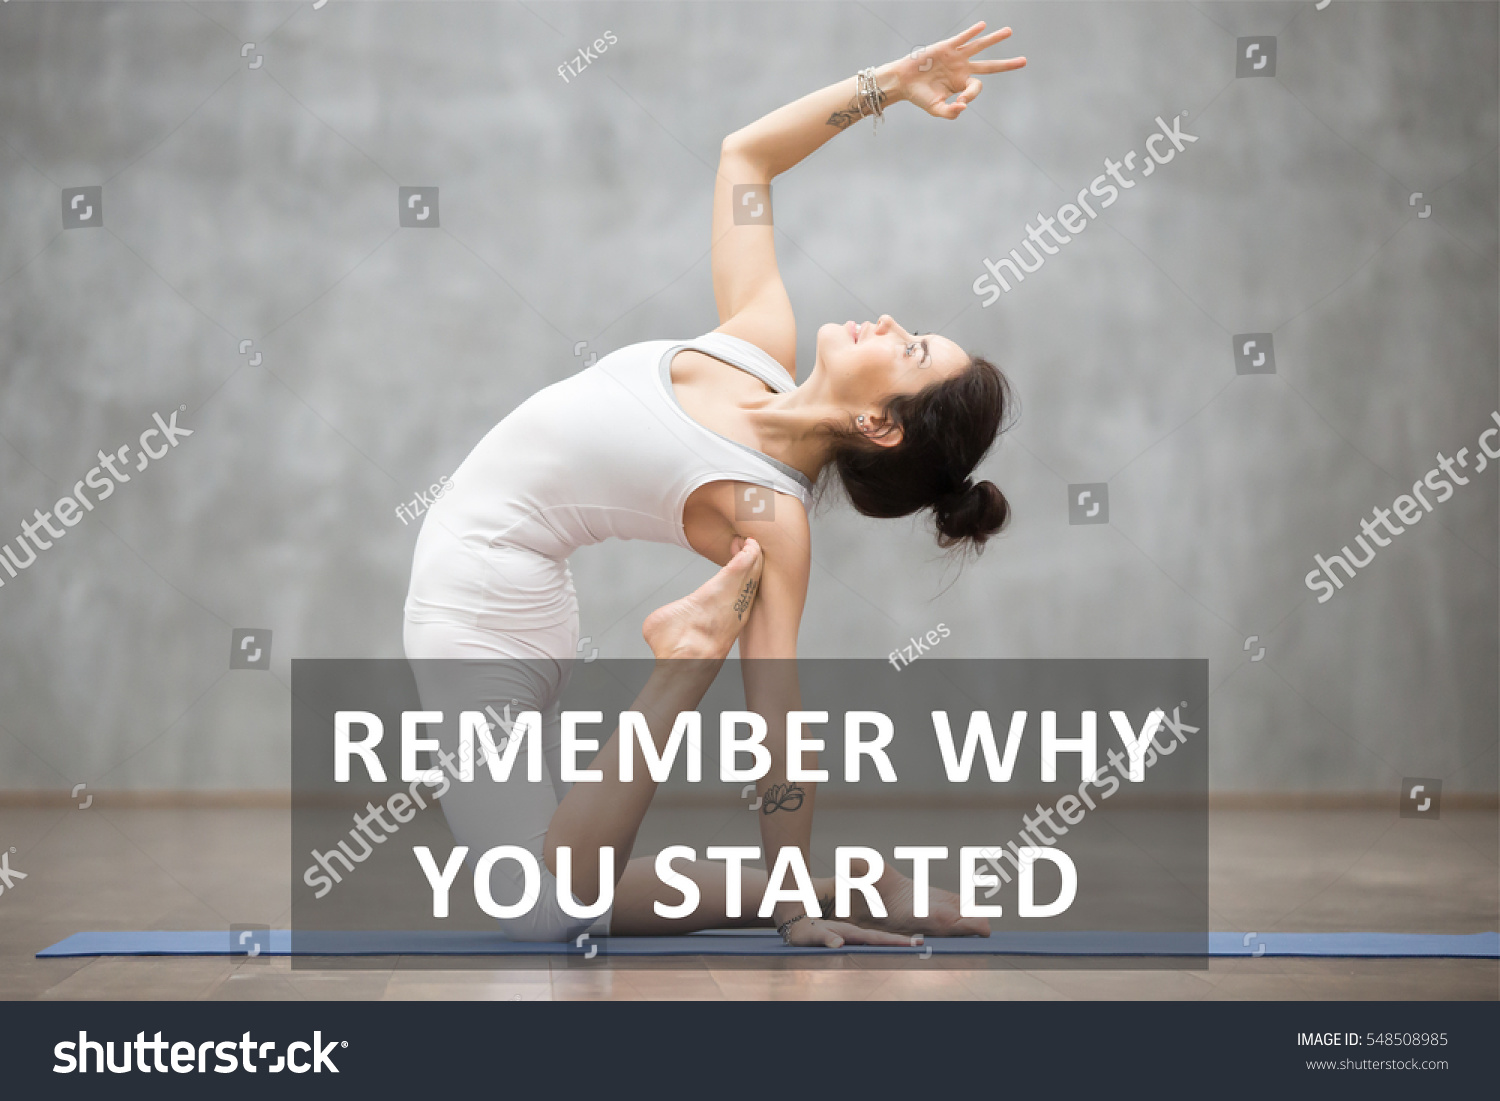 Fit Woman Tattoo Doing Yoga Pilates Stock Photo Edit Now 548508985